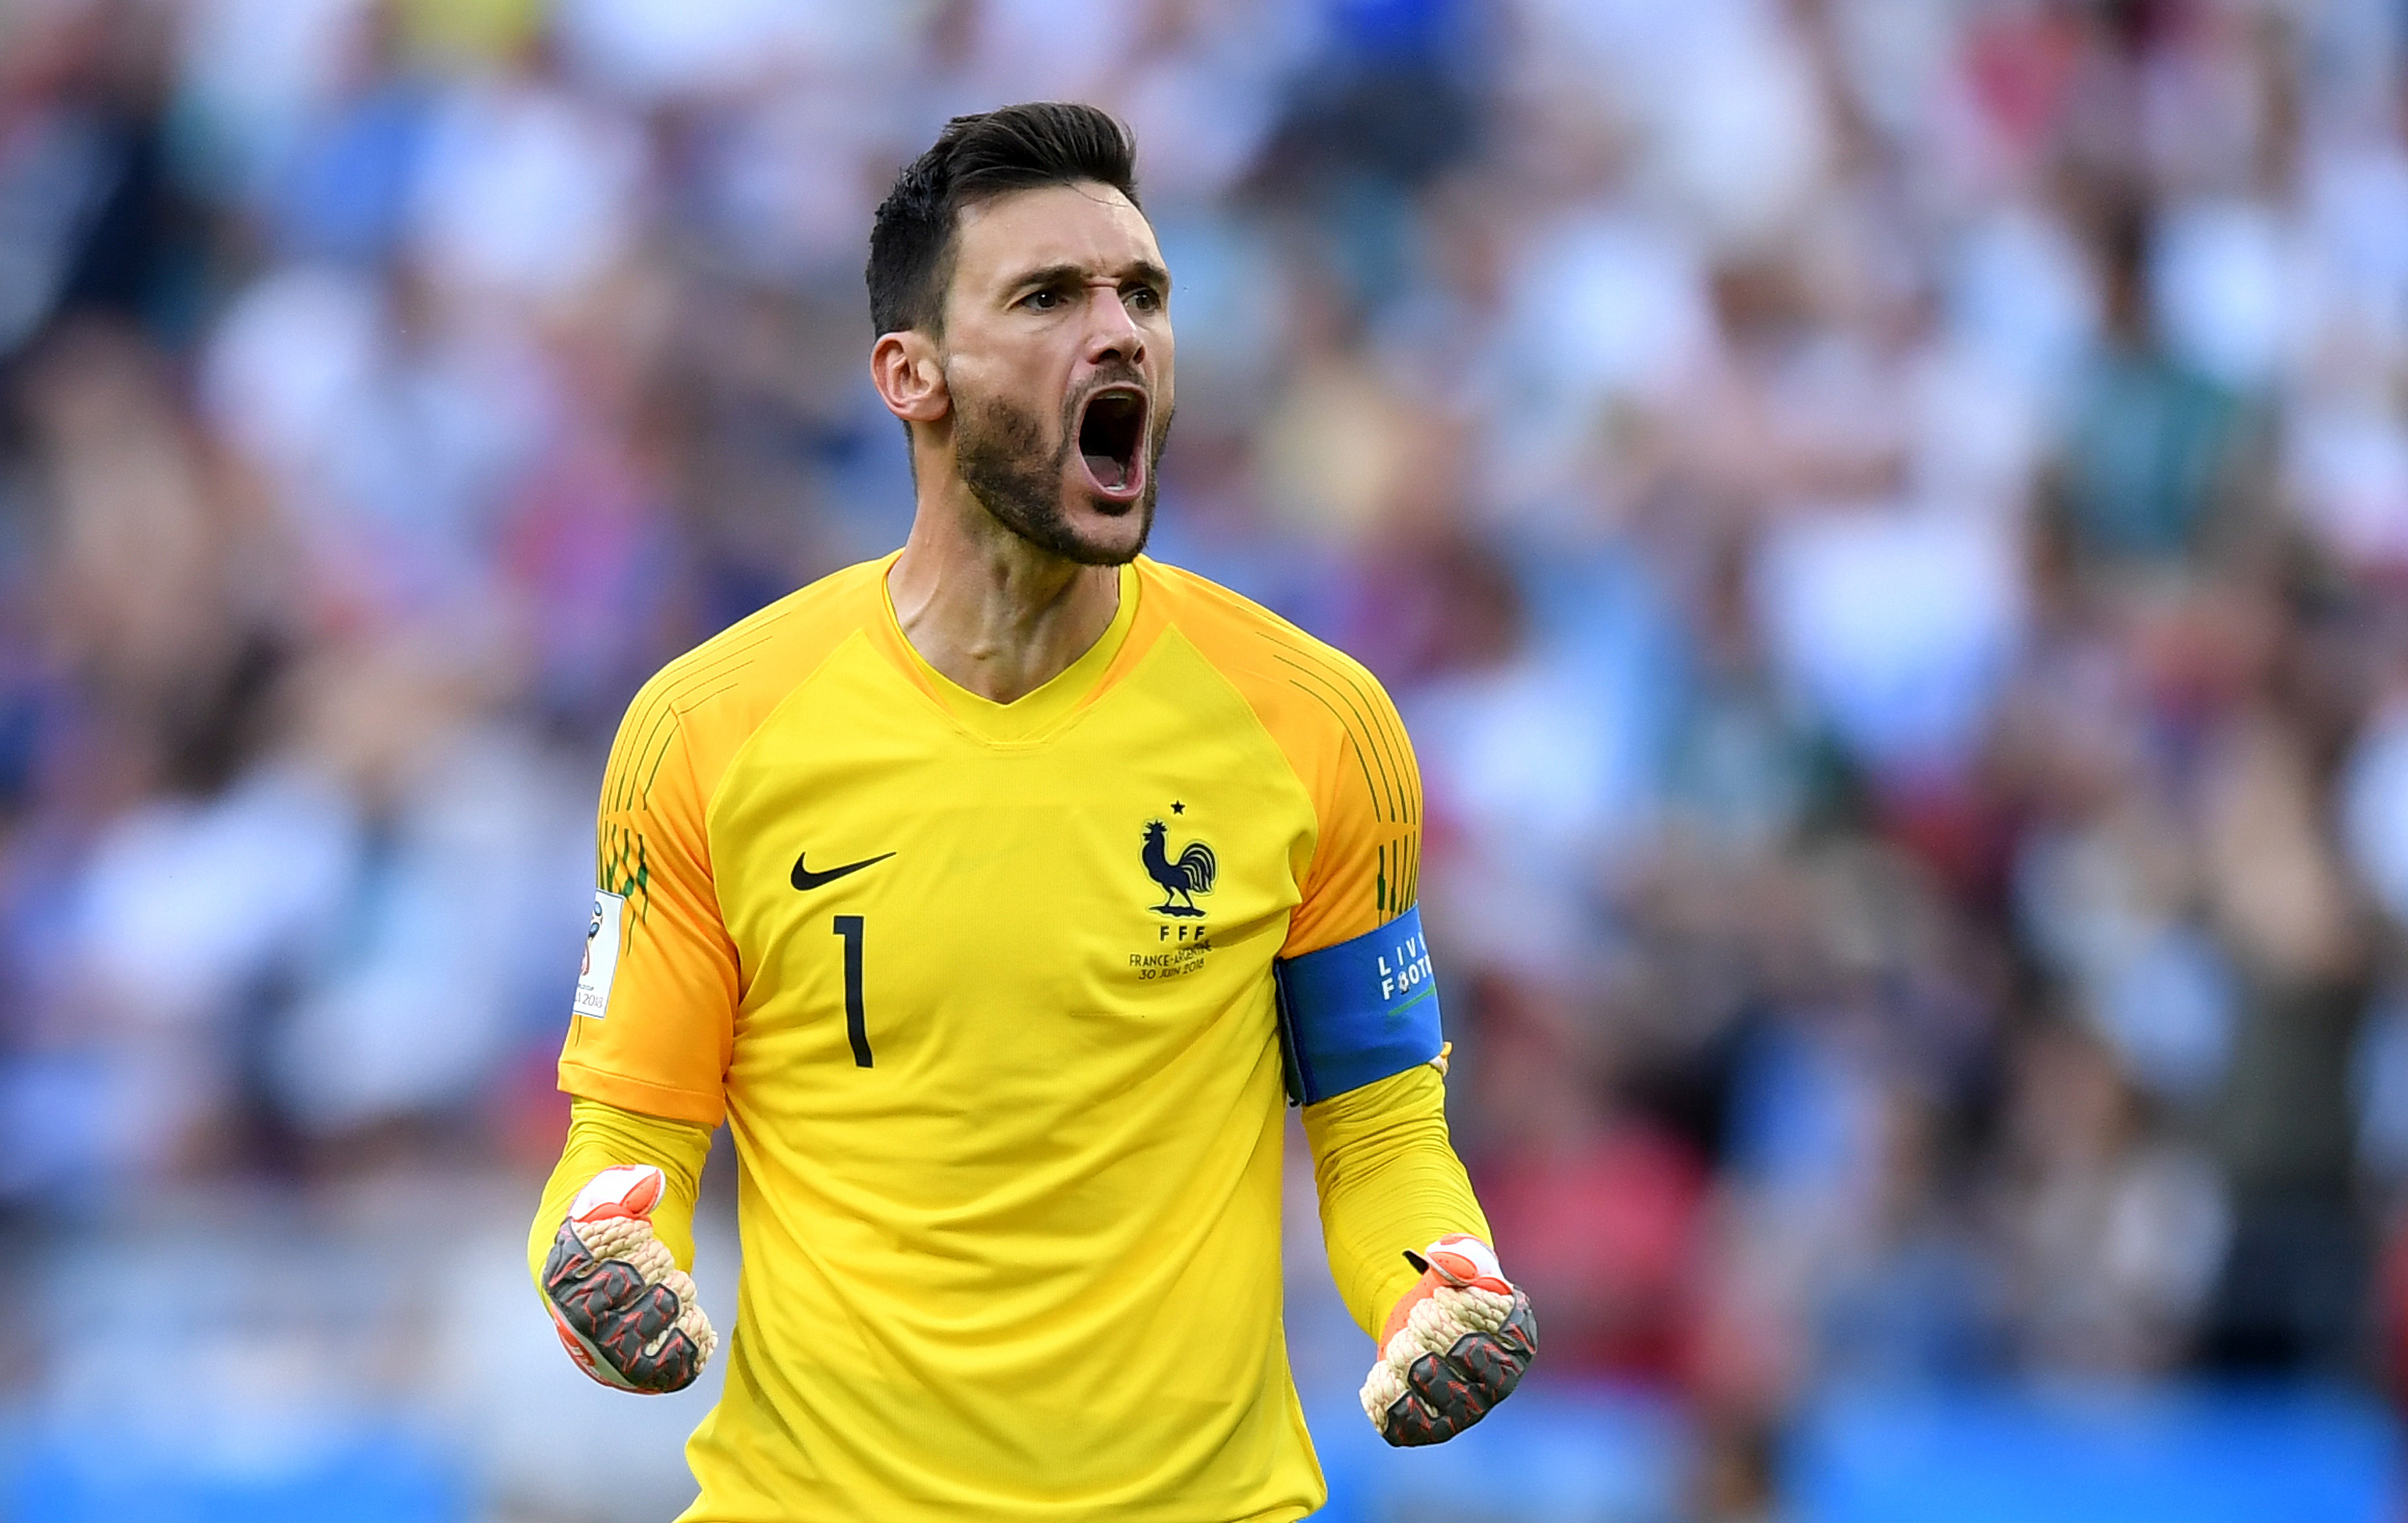 Lloris banned for drink-driving, Latest Football News